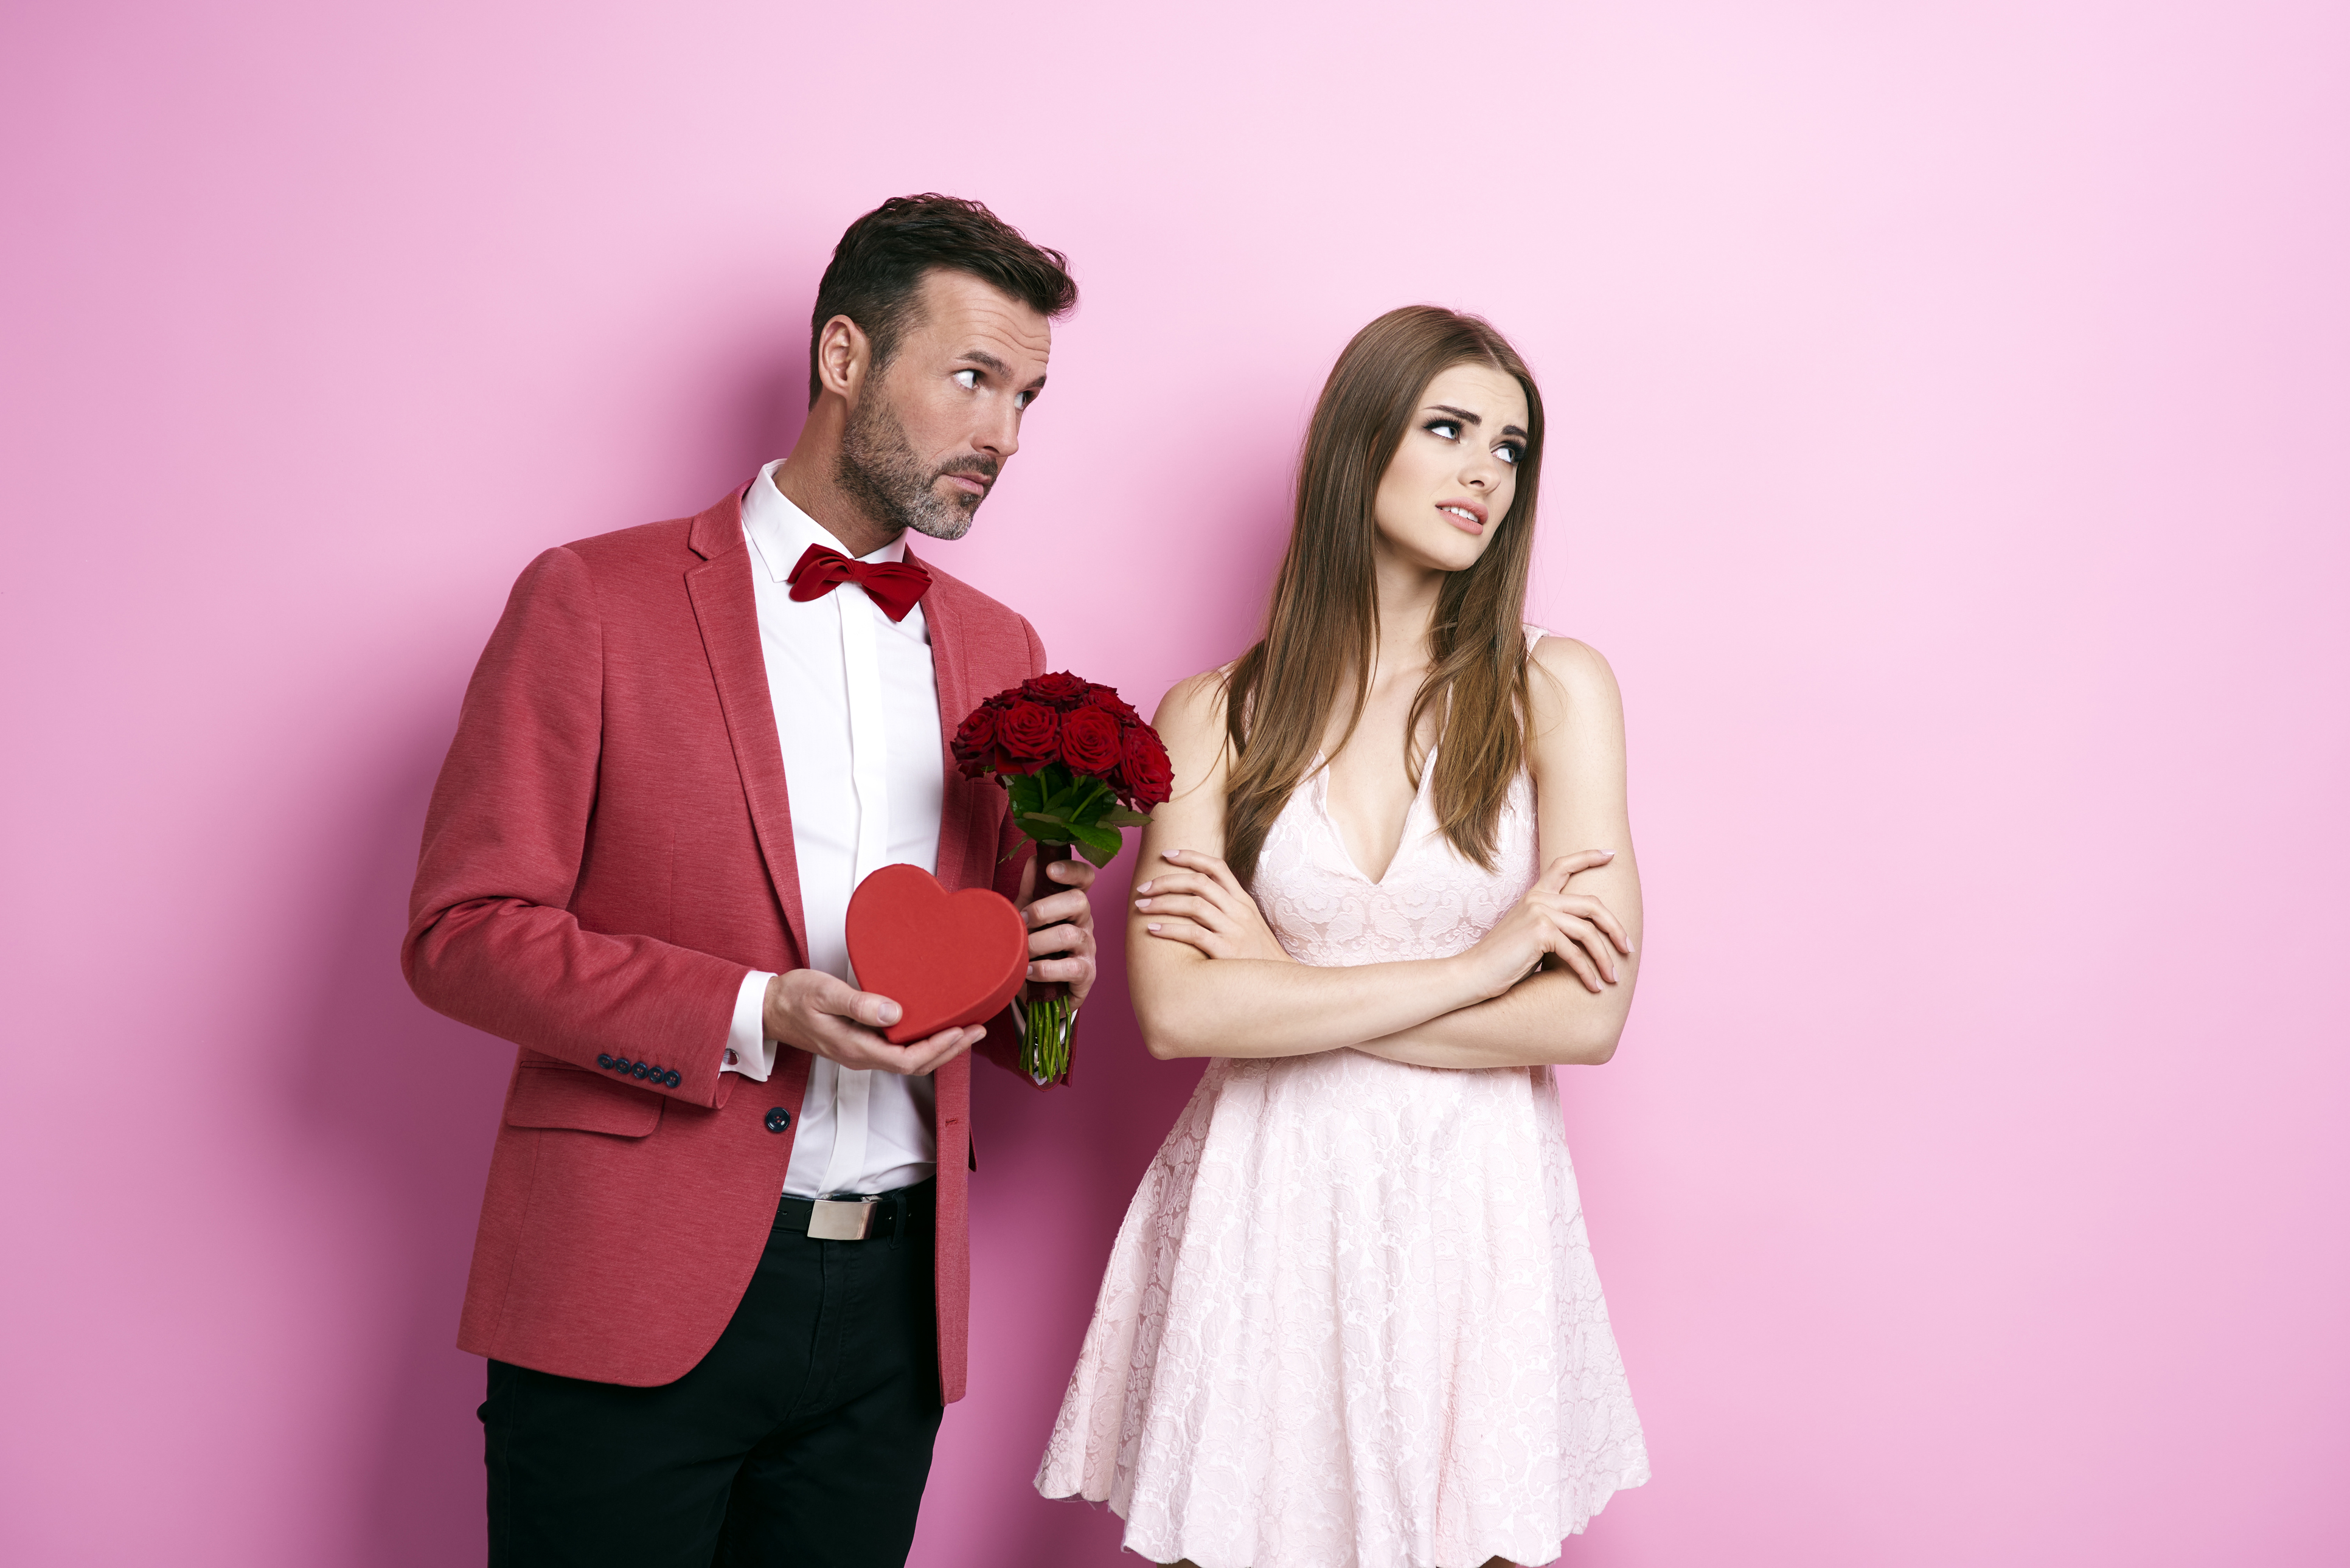 Online Dating: Intimidated By A Guy That Wanted To Meet So Quickly. Was It Okay For Me To Turn Him Down?